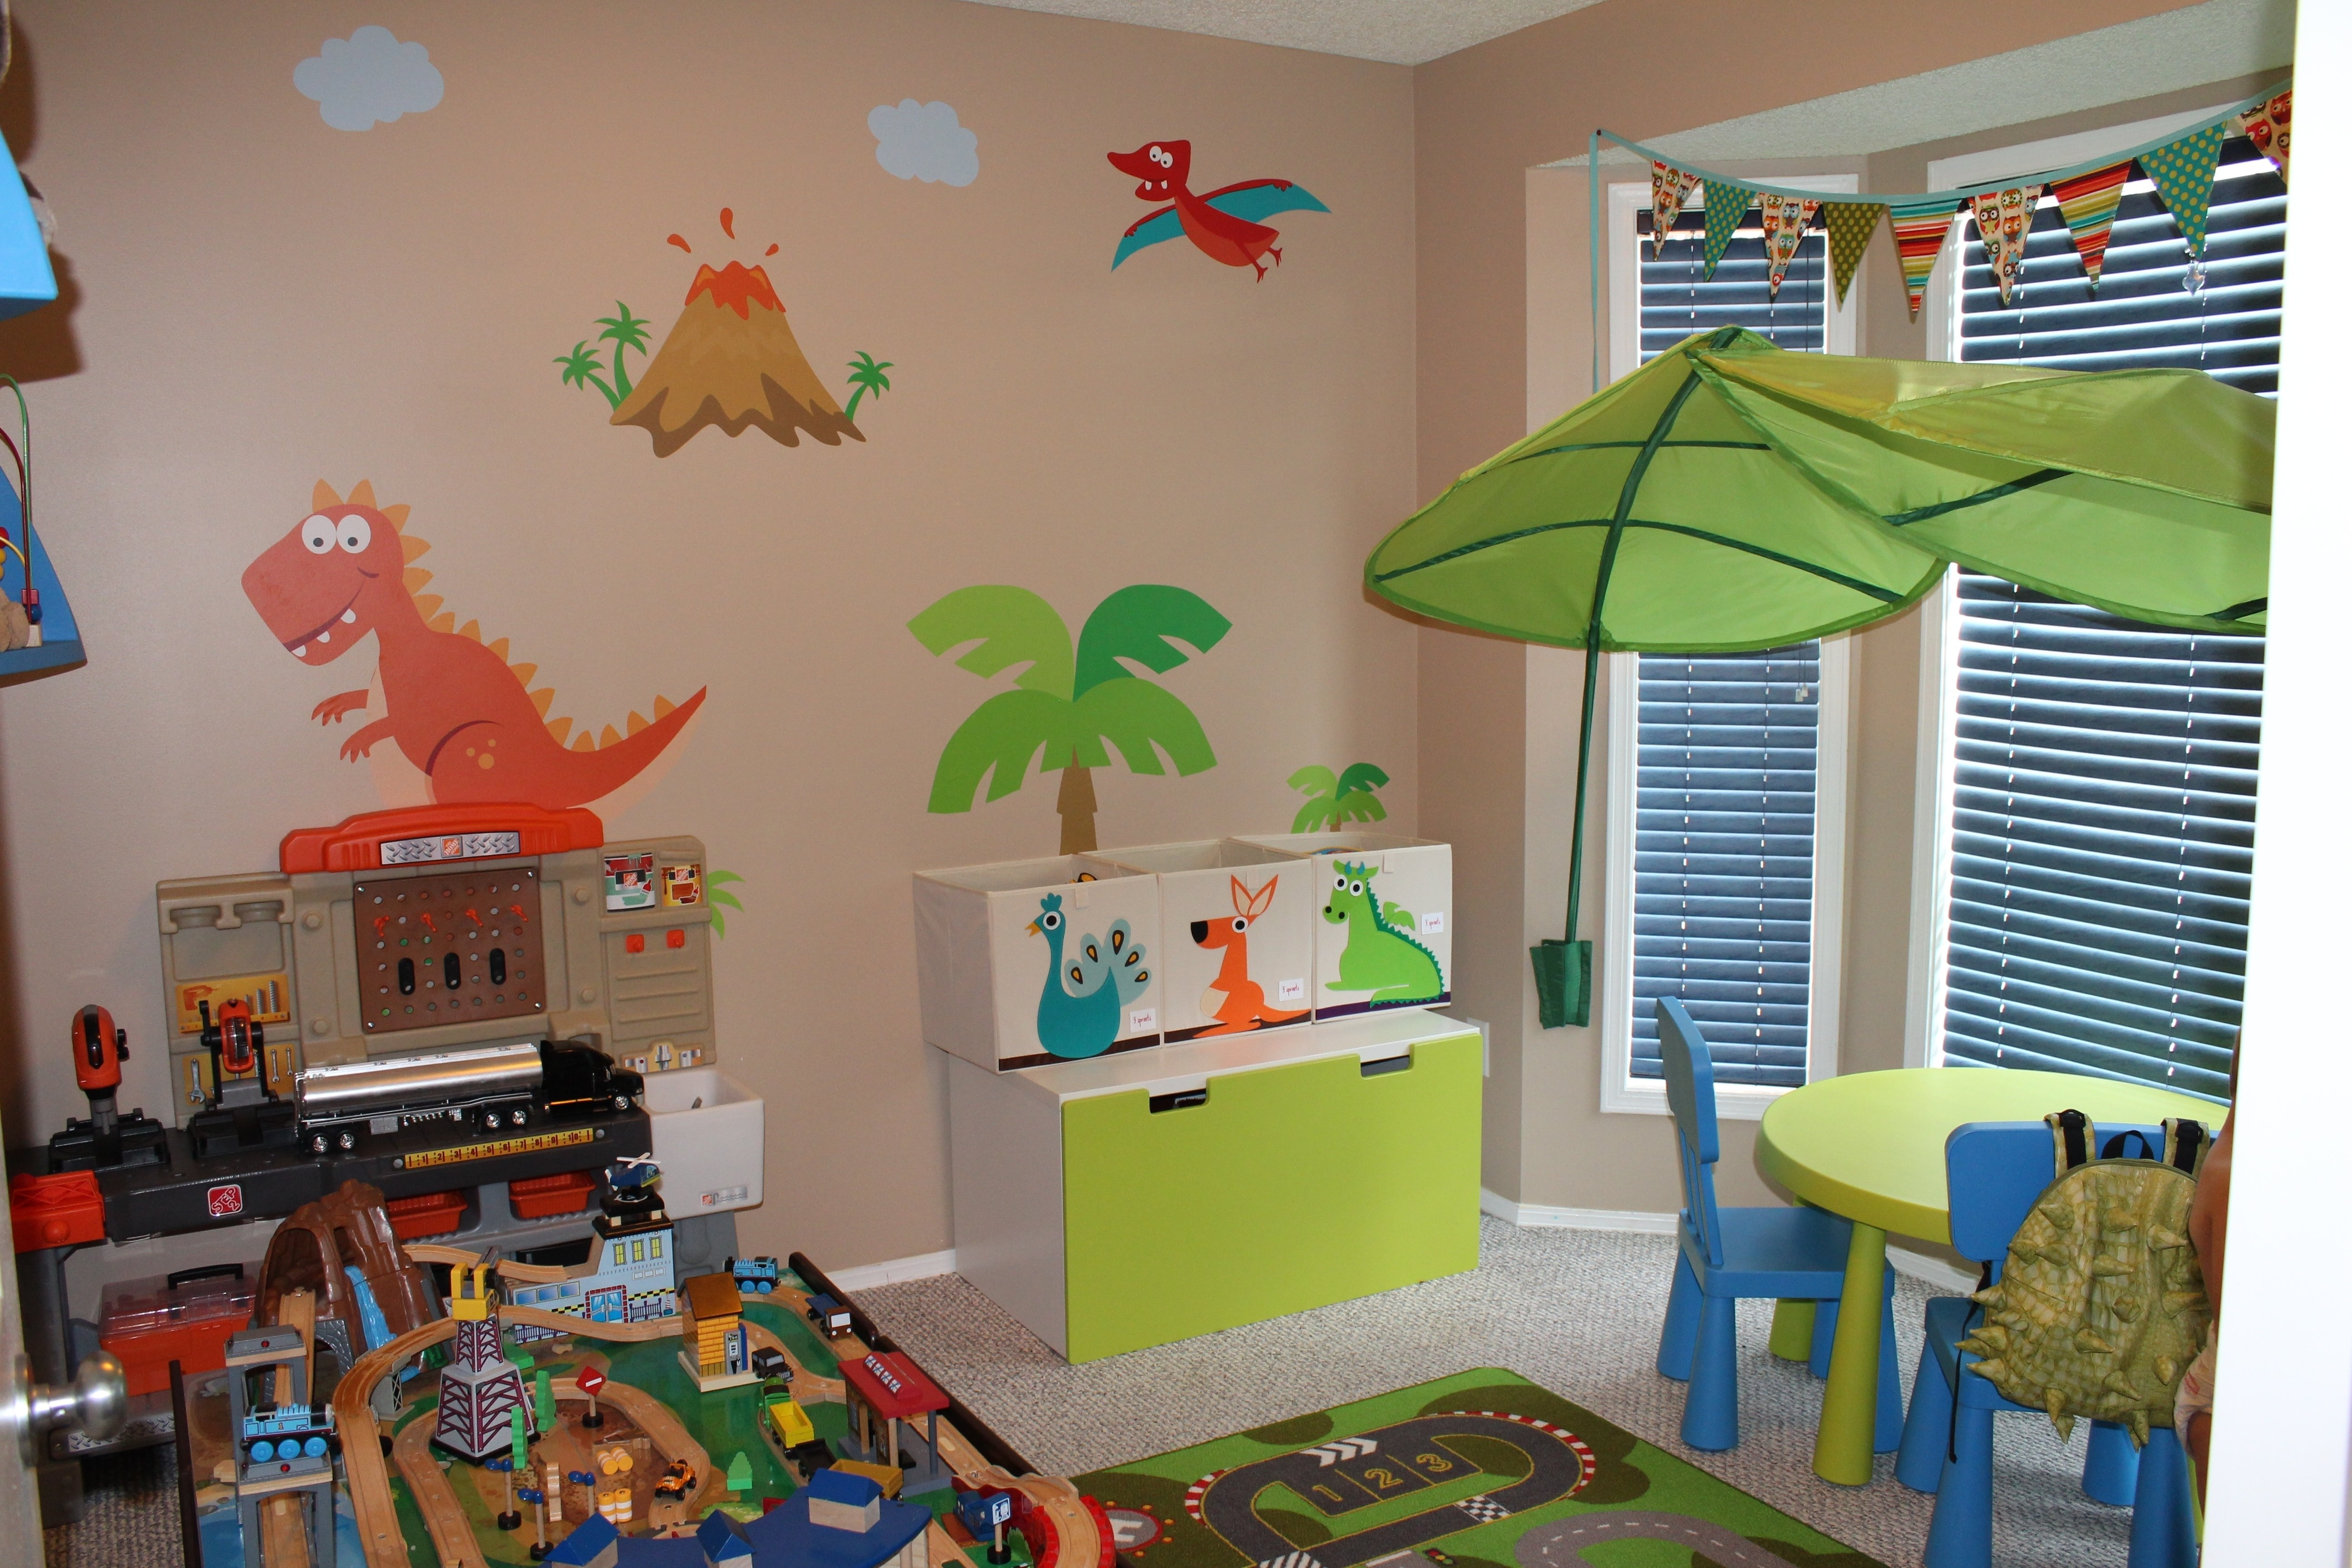 10 Nice Toddler Boy Room Decorating Ideas 15 cool boys bedroom ideas decorating a little boy room pertaining